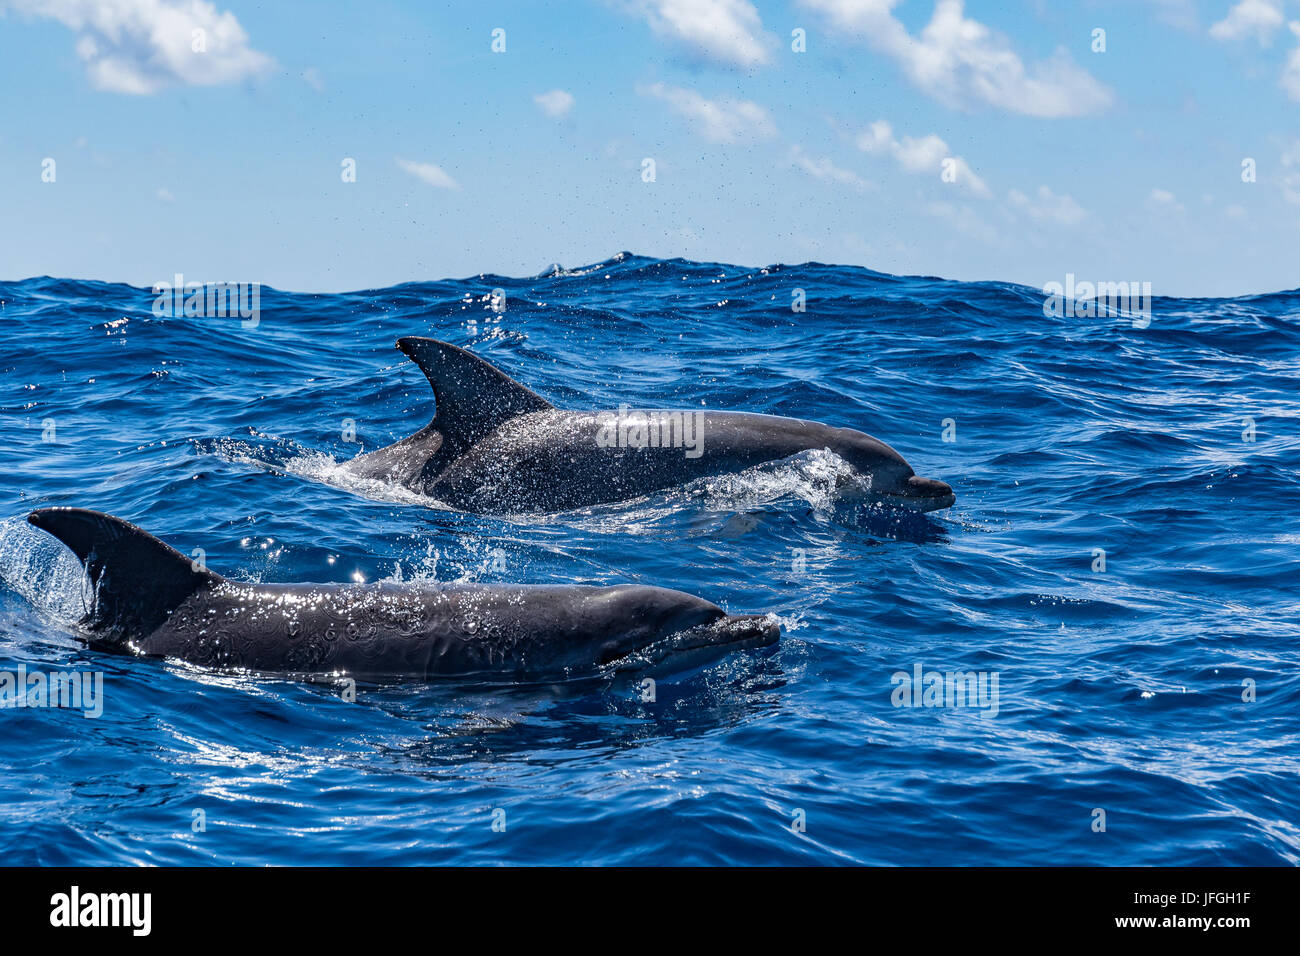 two dolphins - Stock Image